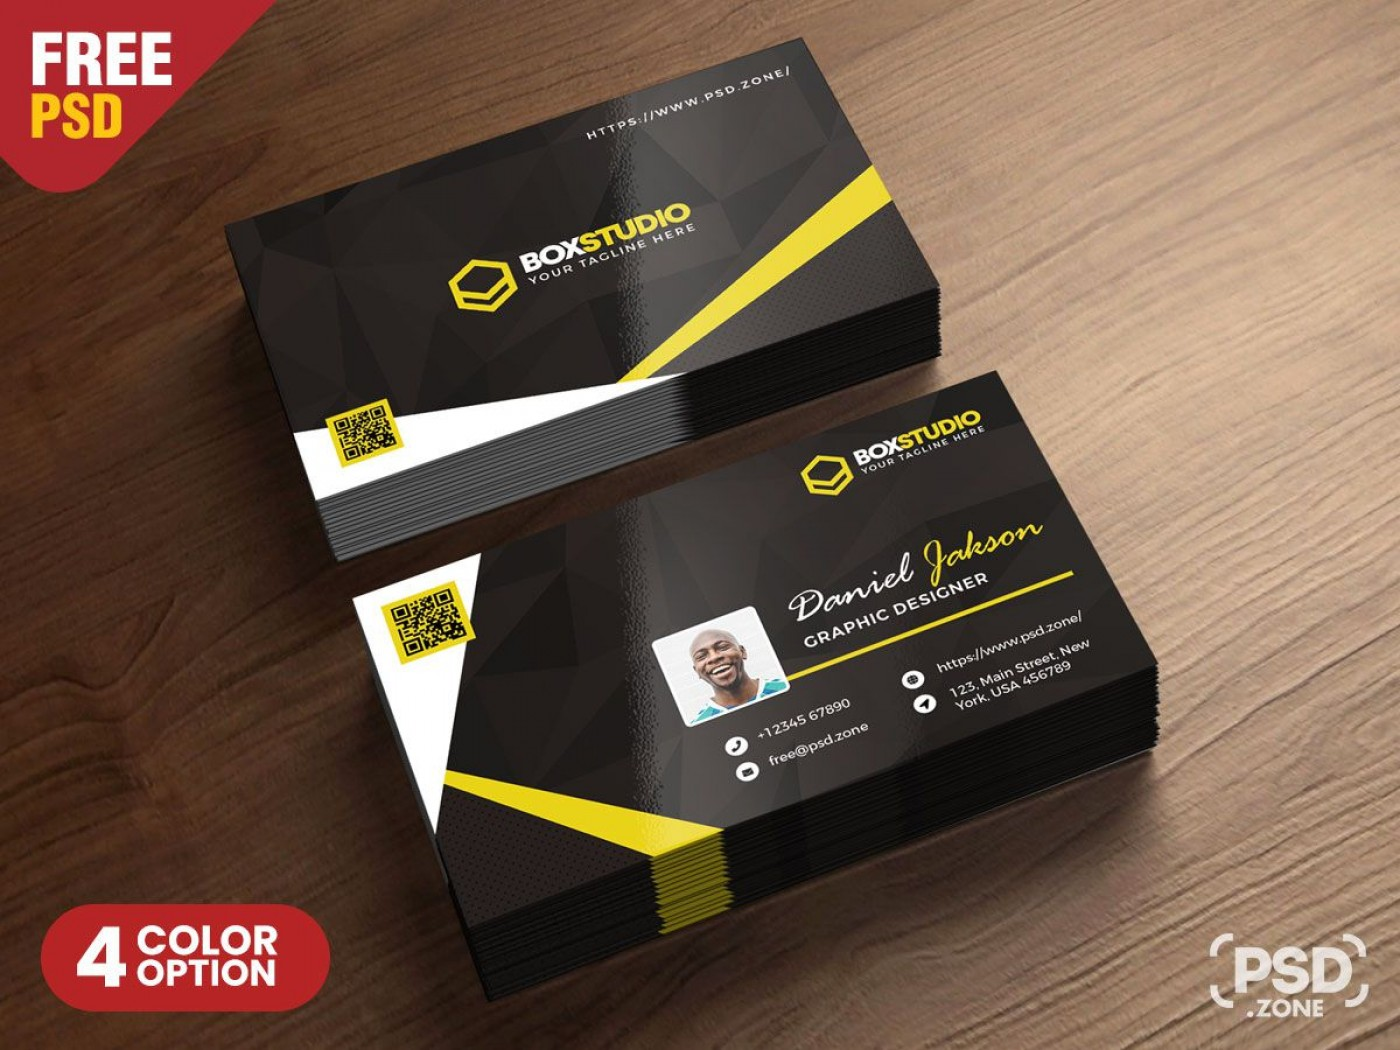 007 Stupendou Psd Busines Card Template Highest Quality  With Bleed And Crop Mark Vistaprint Free1400